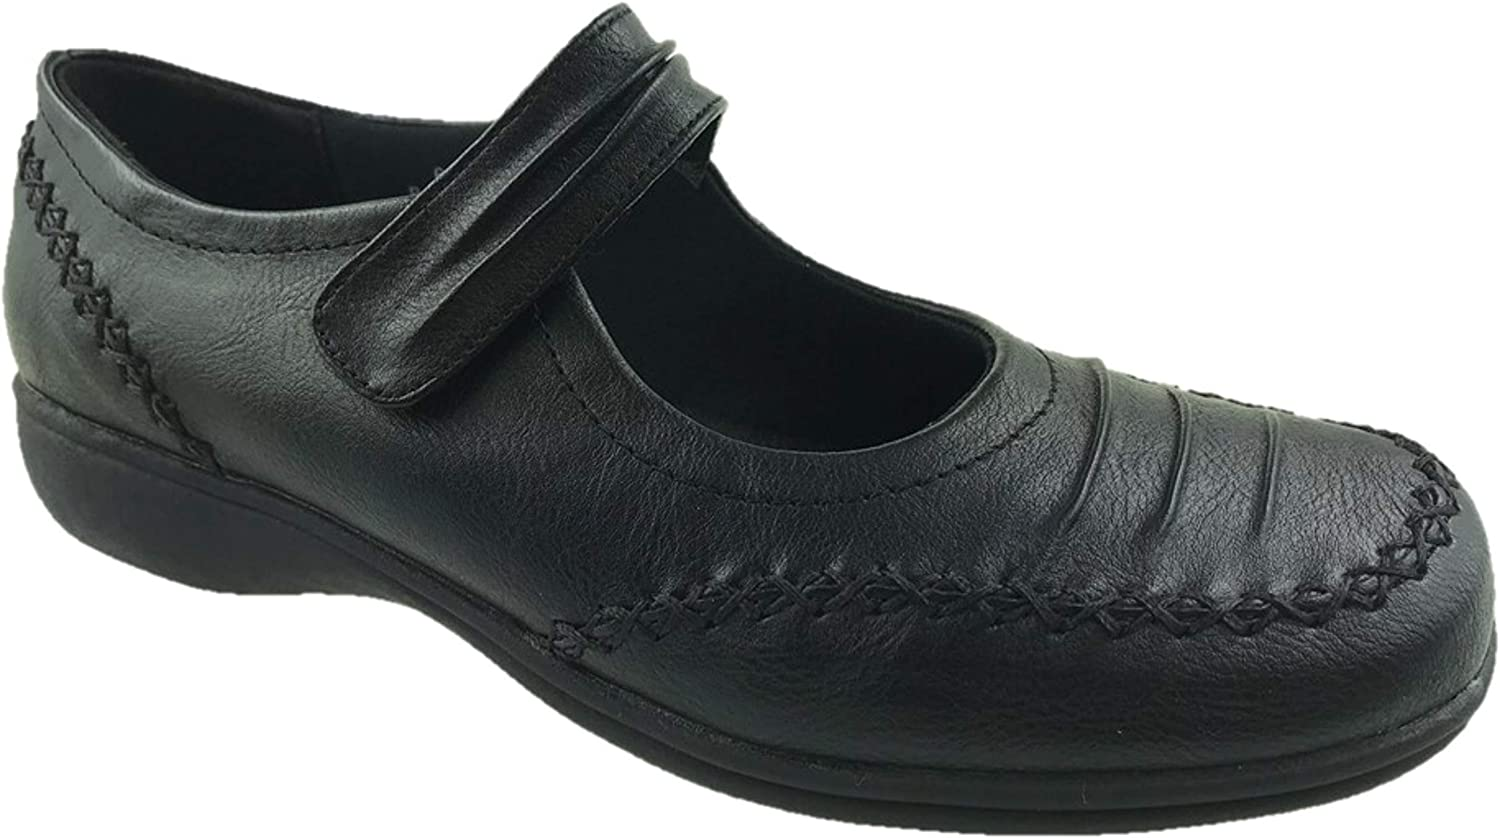 Ladies Faux Leather Mary Jane Low Wedge Comfort Walking Shoes Size UK 4-9 Black